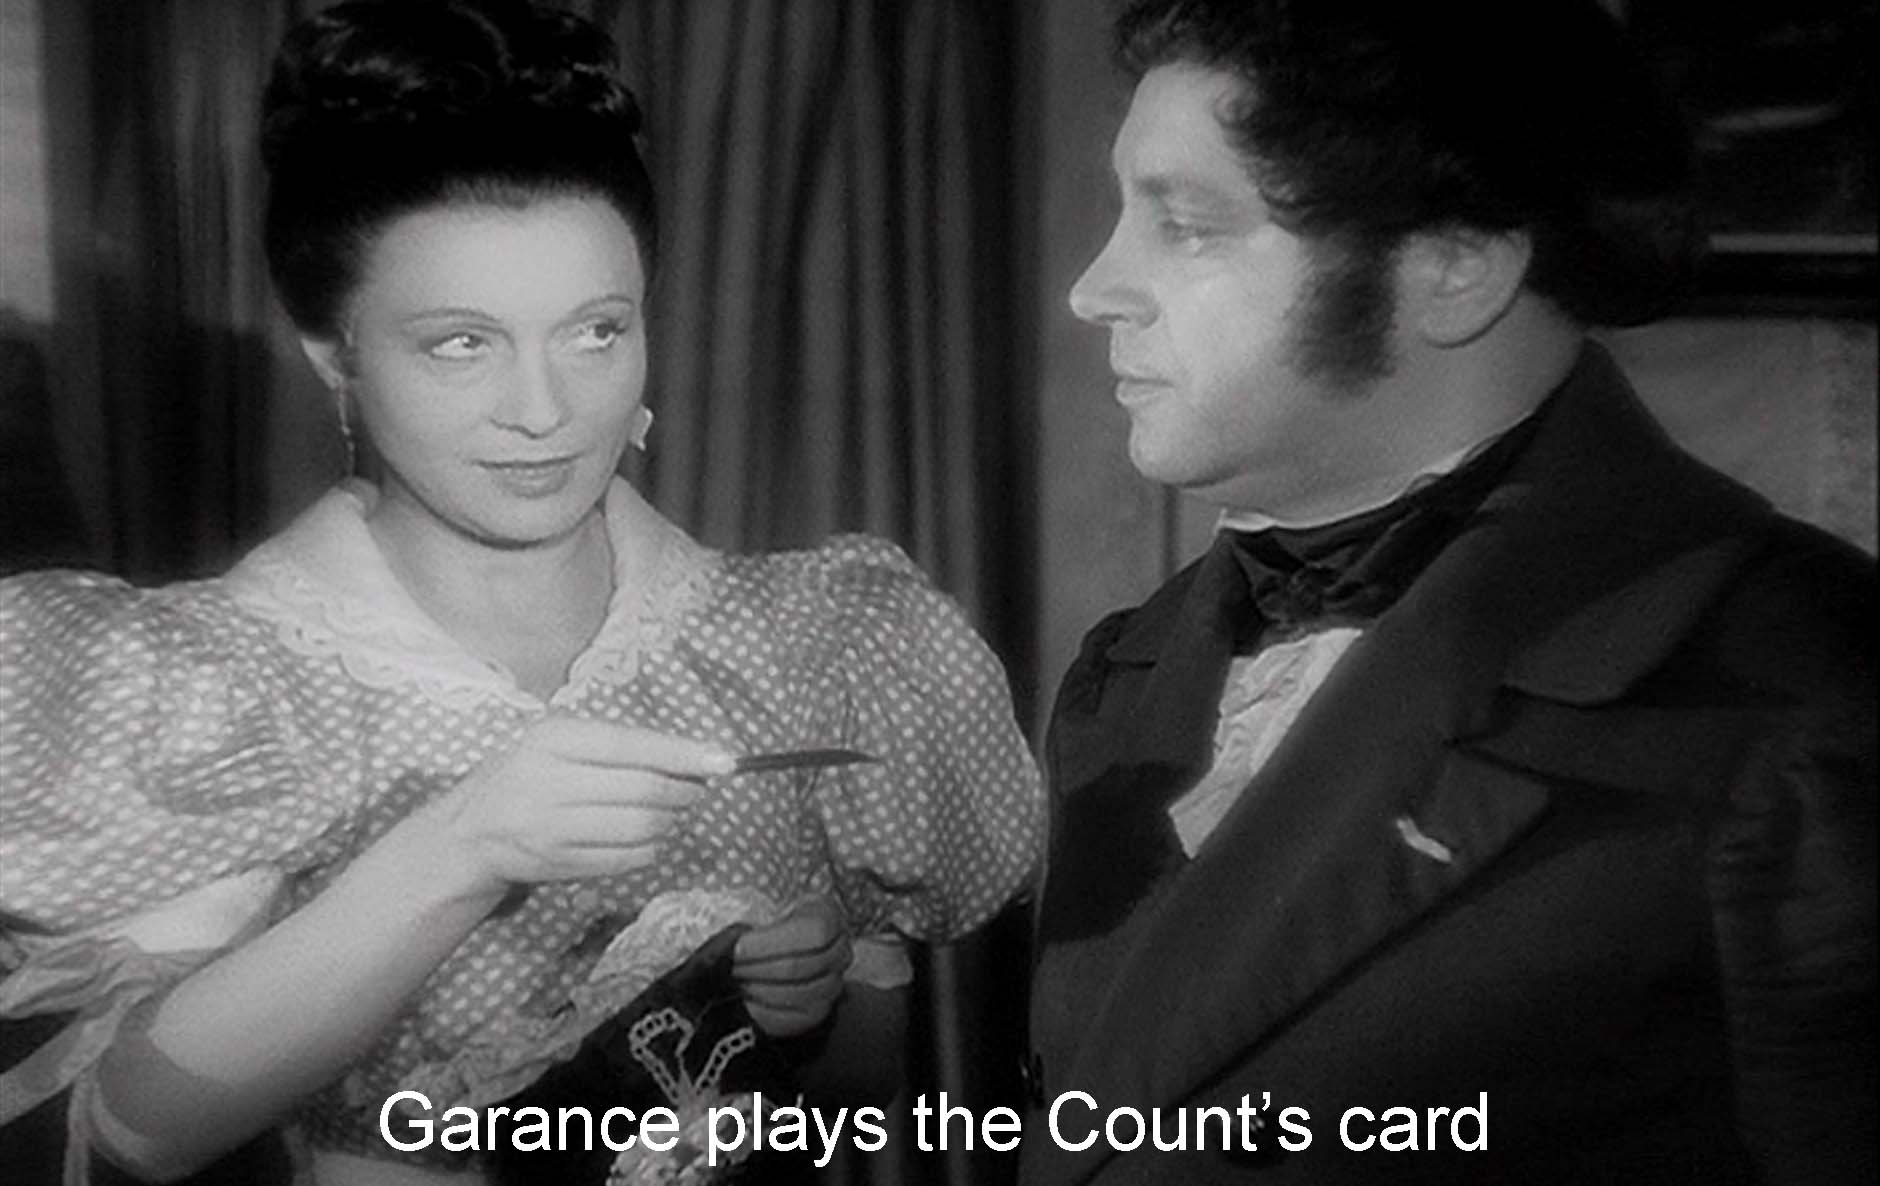 Garance counts on the Count